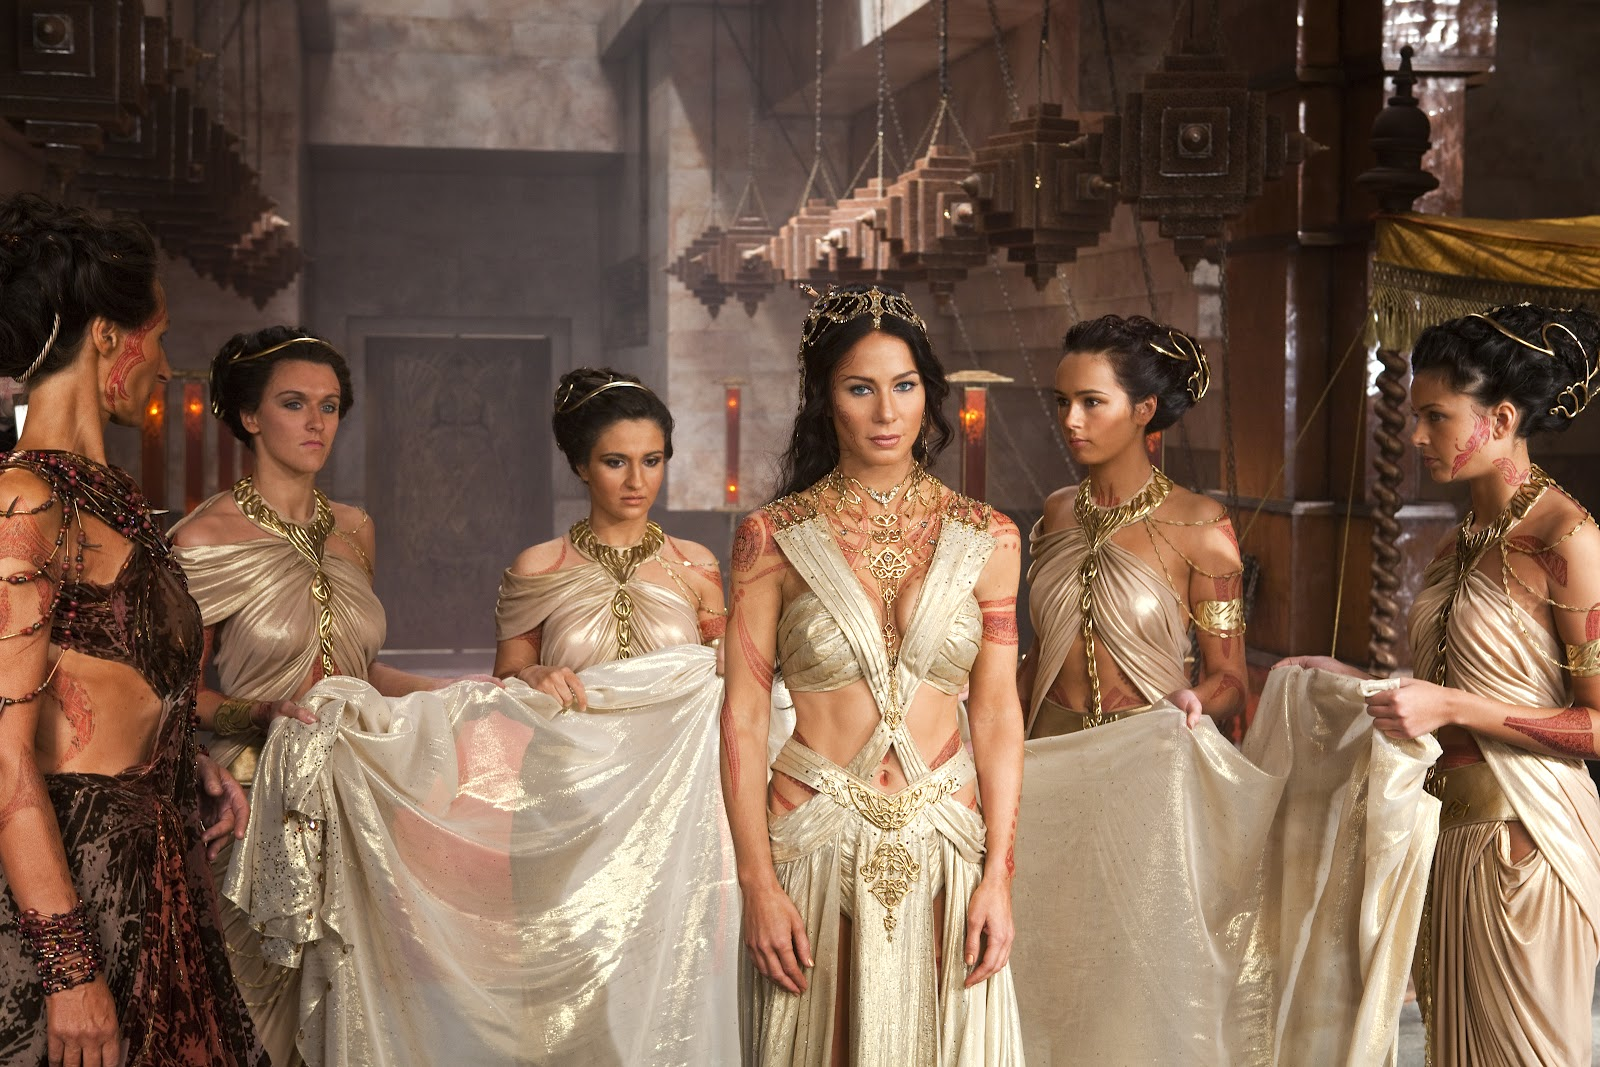 All Things X: Xcursus: John Carter Movie Review...